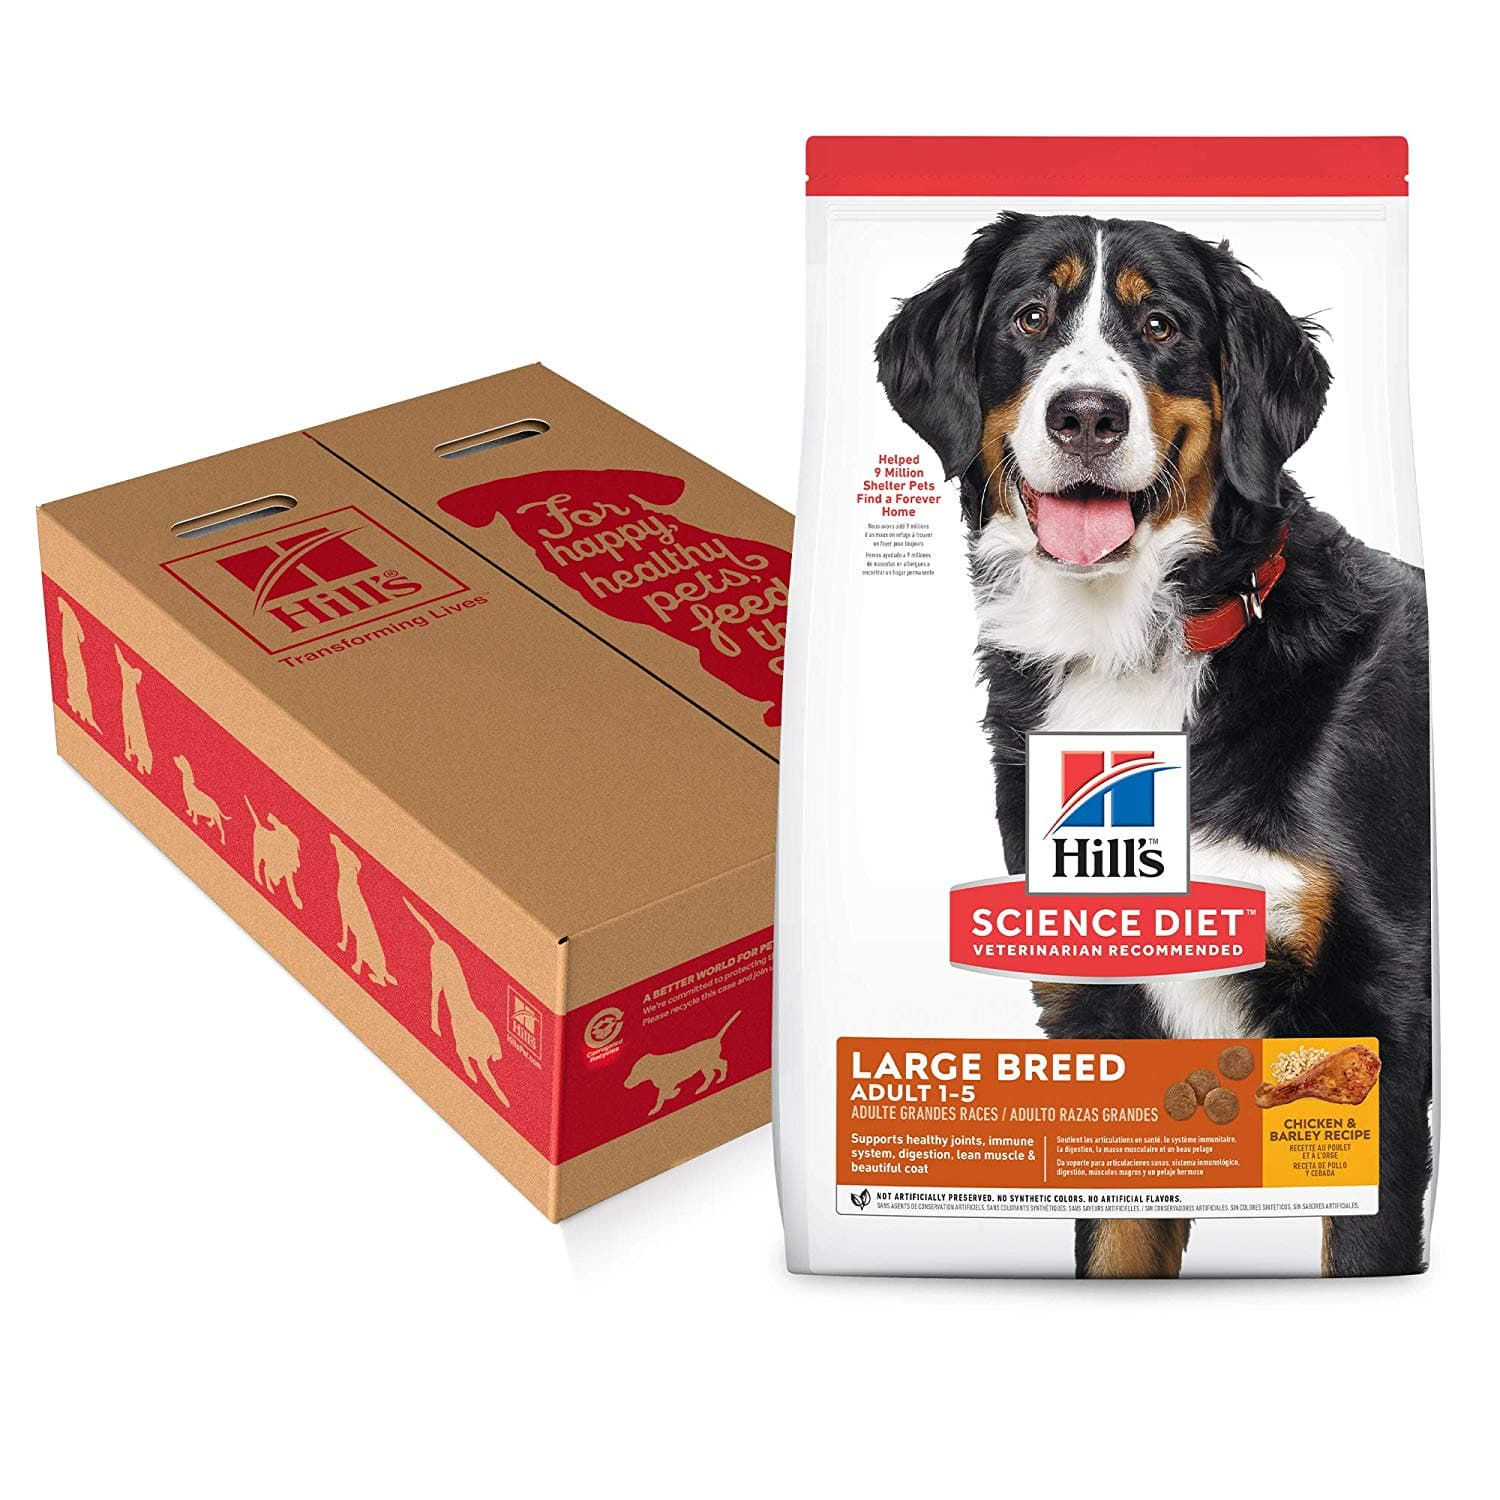 35lb Hill's Science Diet Dry Dog Food, Adult, Large Breeds, Chicken & Barley Recipe - $14 S&S F/S